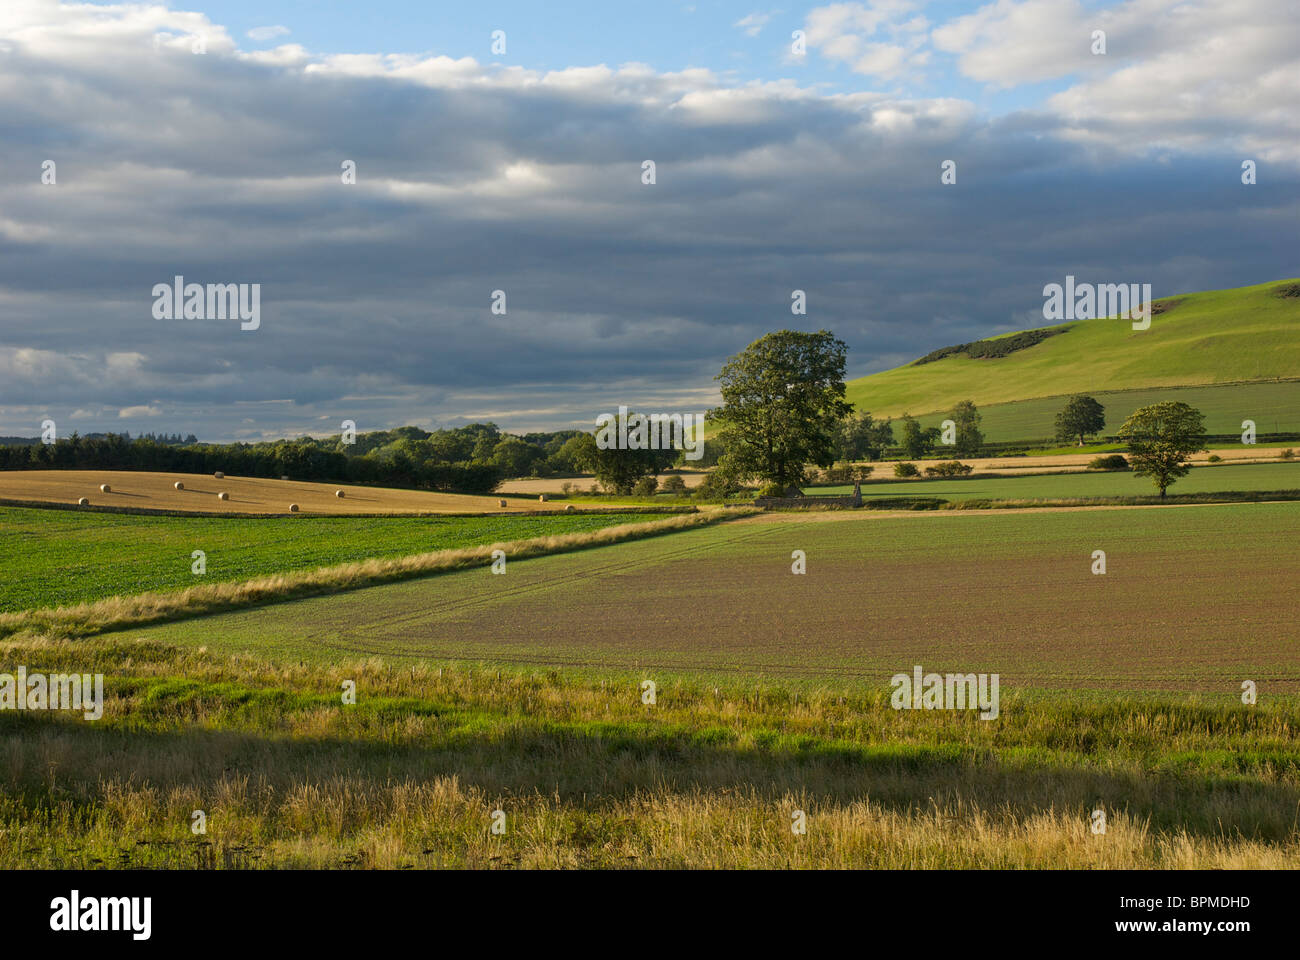 Agricultural landscape in the Scottish Borders, UK - Stock Image